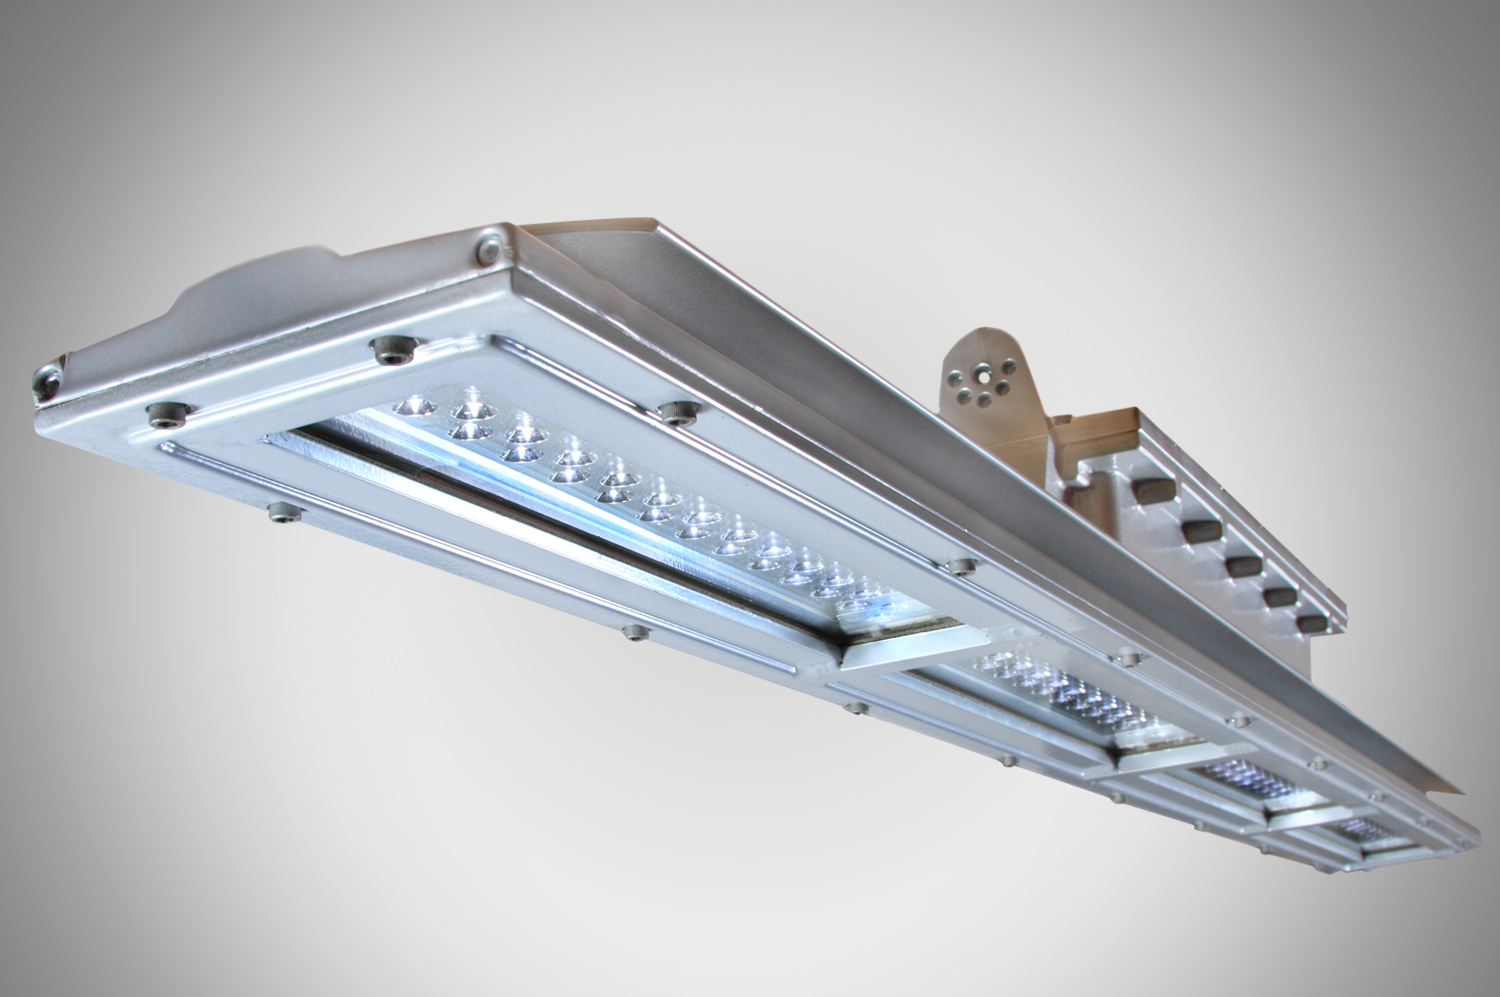 Dialight Unveils Industryu0027s First Class I Div 1 LED Linear Fixture for Hazardous Locations & Dialight Corporation: Dialight Unveils Industryu0027s First Class I ... azcodes.com